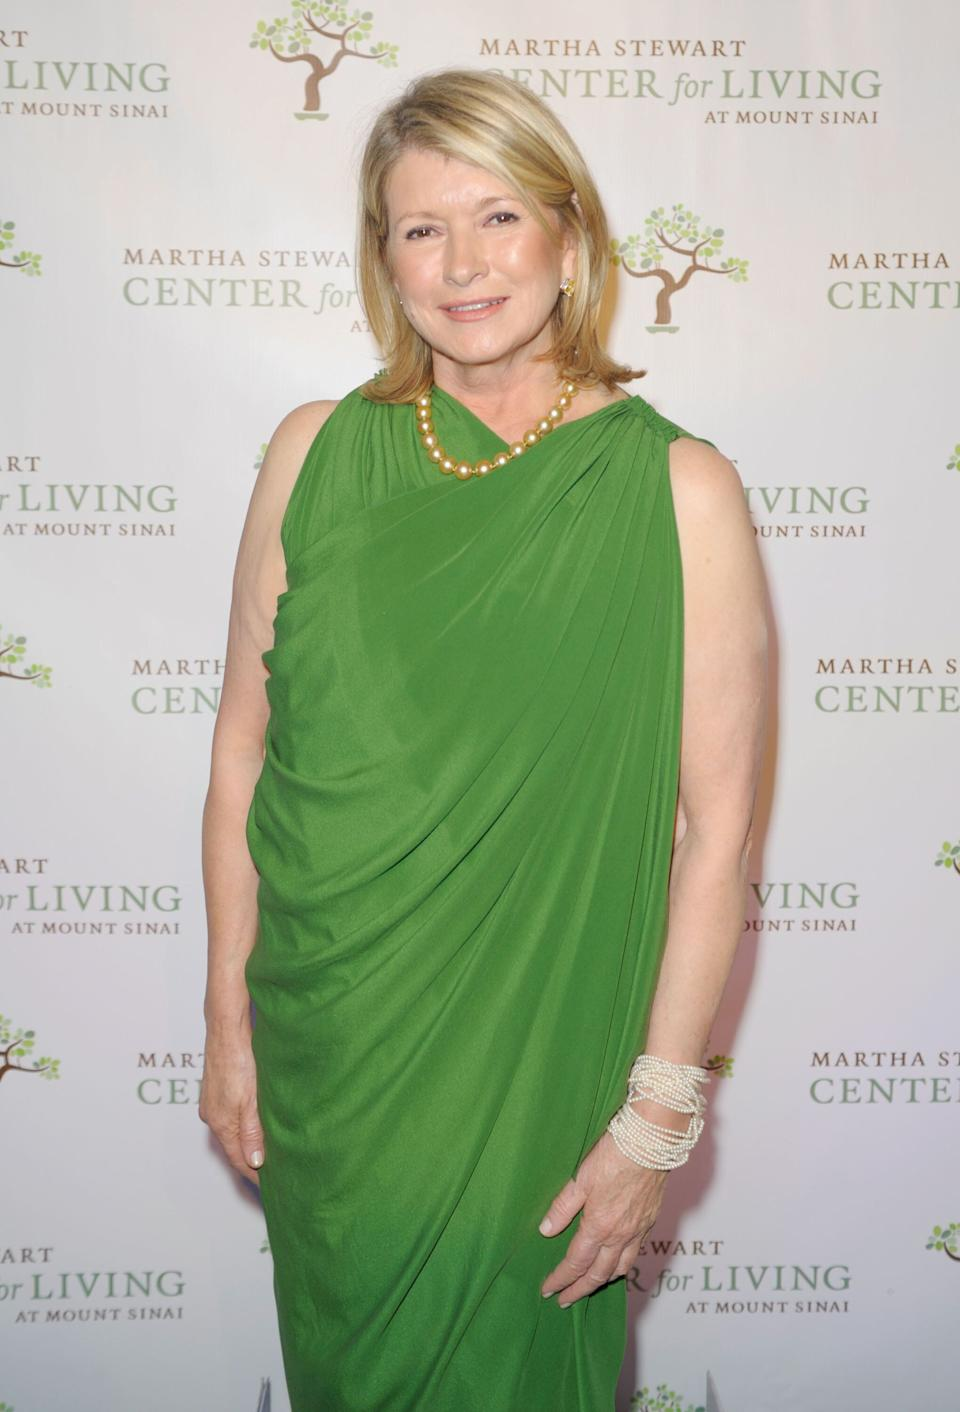 Stewart at the fourth annual Martha Stewart Center for Living at Mount Sinai Gala in New York City on Nov. 16, 2011.